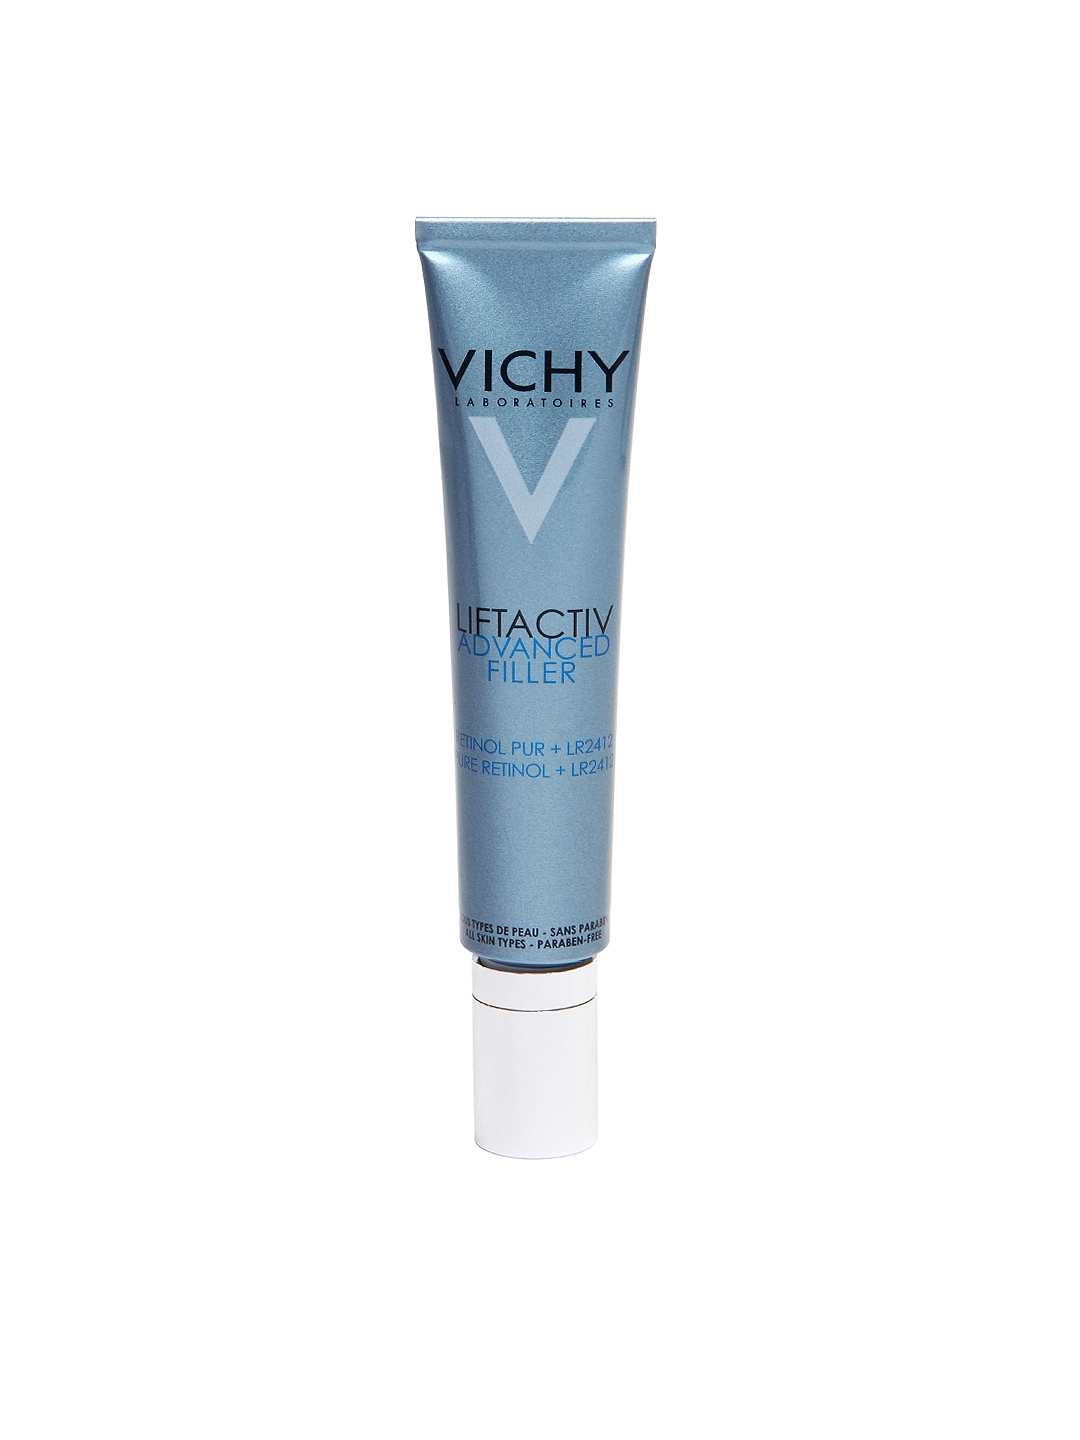 Home / Reviews / Vichy. Vichy Reviews. This is a solid cleanser that removes every trace of makeup without stripping. I love Vichy! Details > Double Glow Peel Mask. 4 out of 5 I love 3-in-1 products! Saves time after a long day. The tube is big and the price is fair. I would recommend it to all busy 5/5(24).